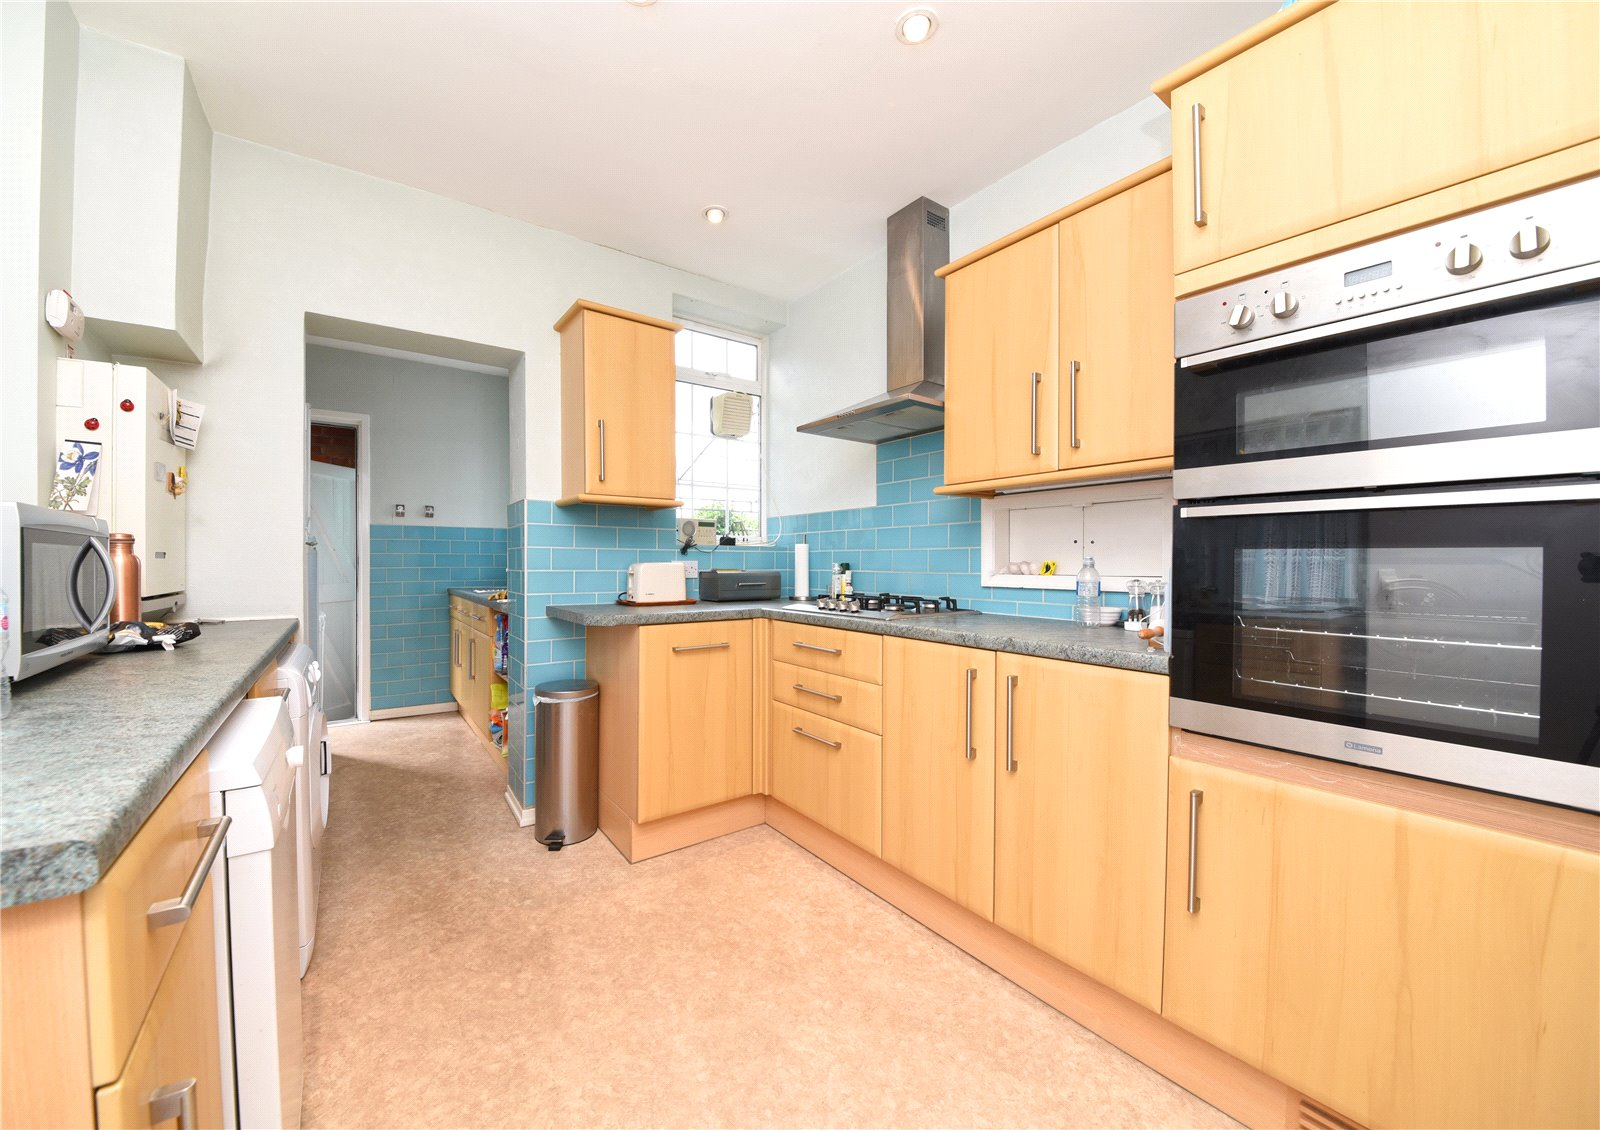 3 bed house for sale in London, N12 9ND  - Property Image 2